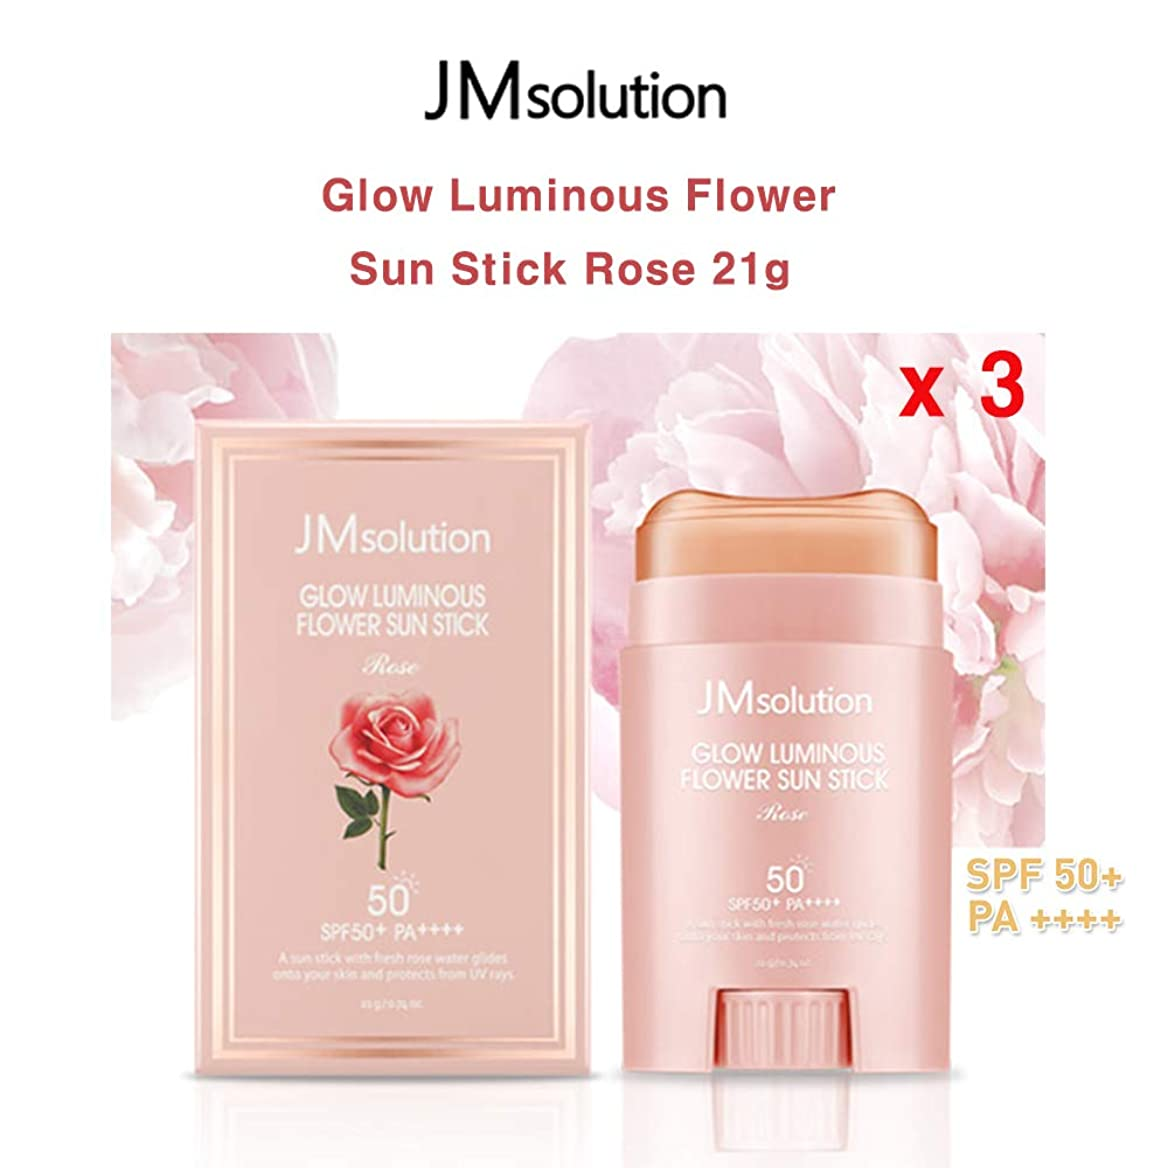 戻す地図サイズJM Solution ★1+1+1★ Glow Luminous Flower Sun Stick Rose 21g (spf50 PA) 光る輝く花Sun Stick Rose